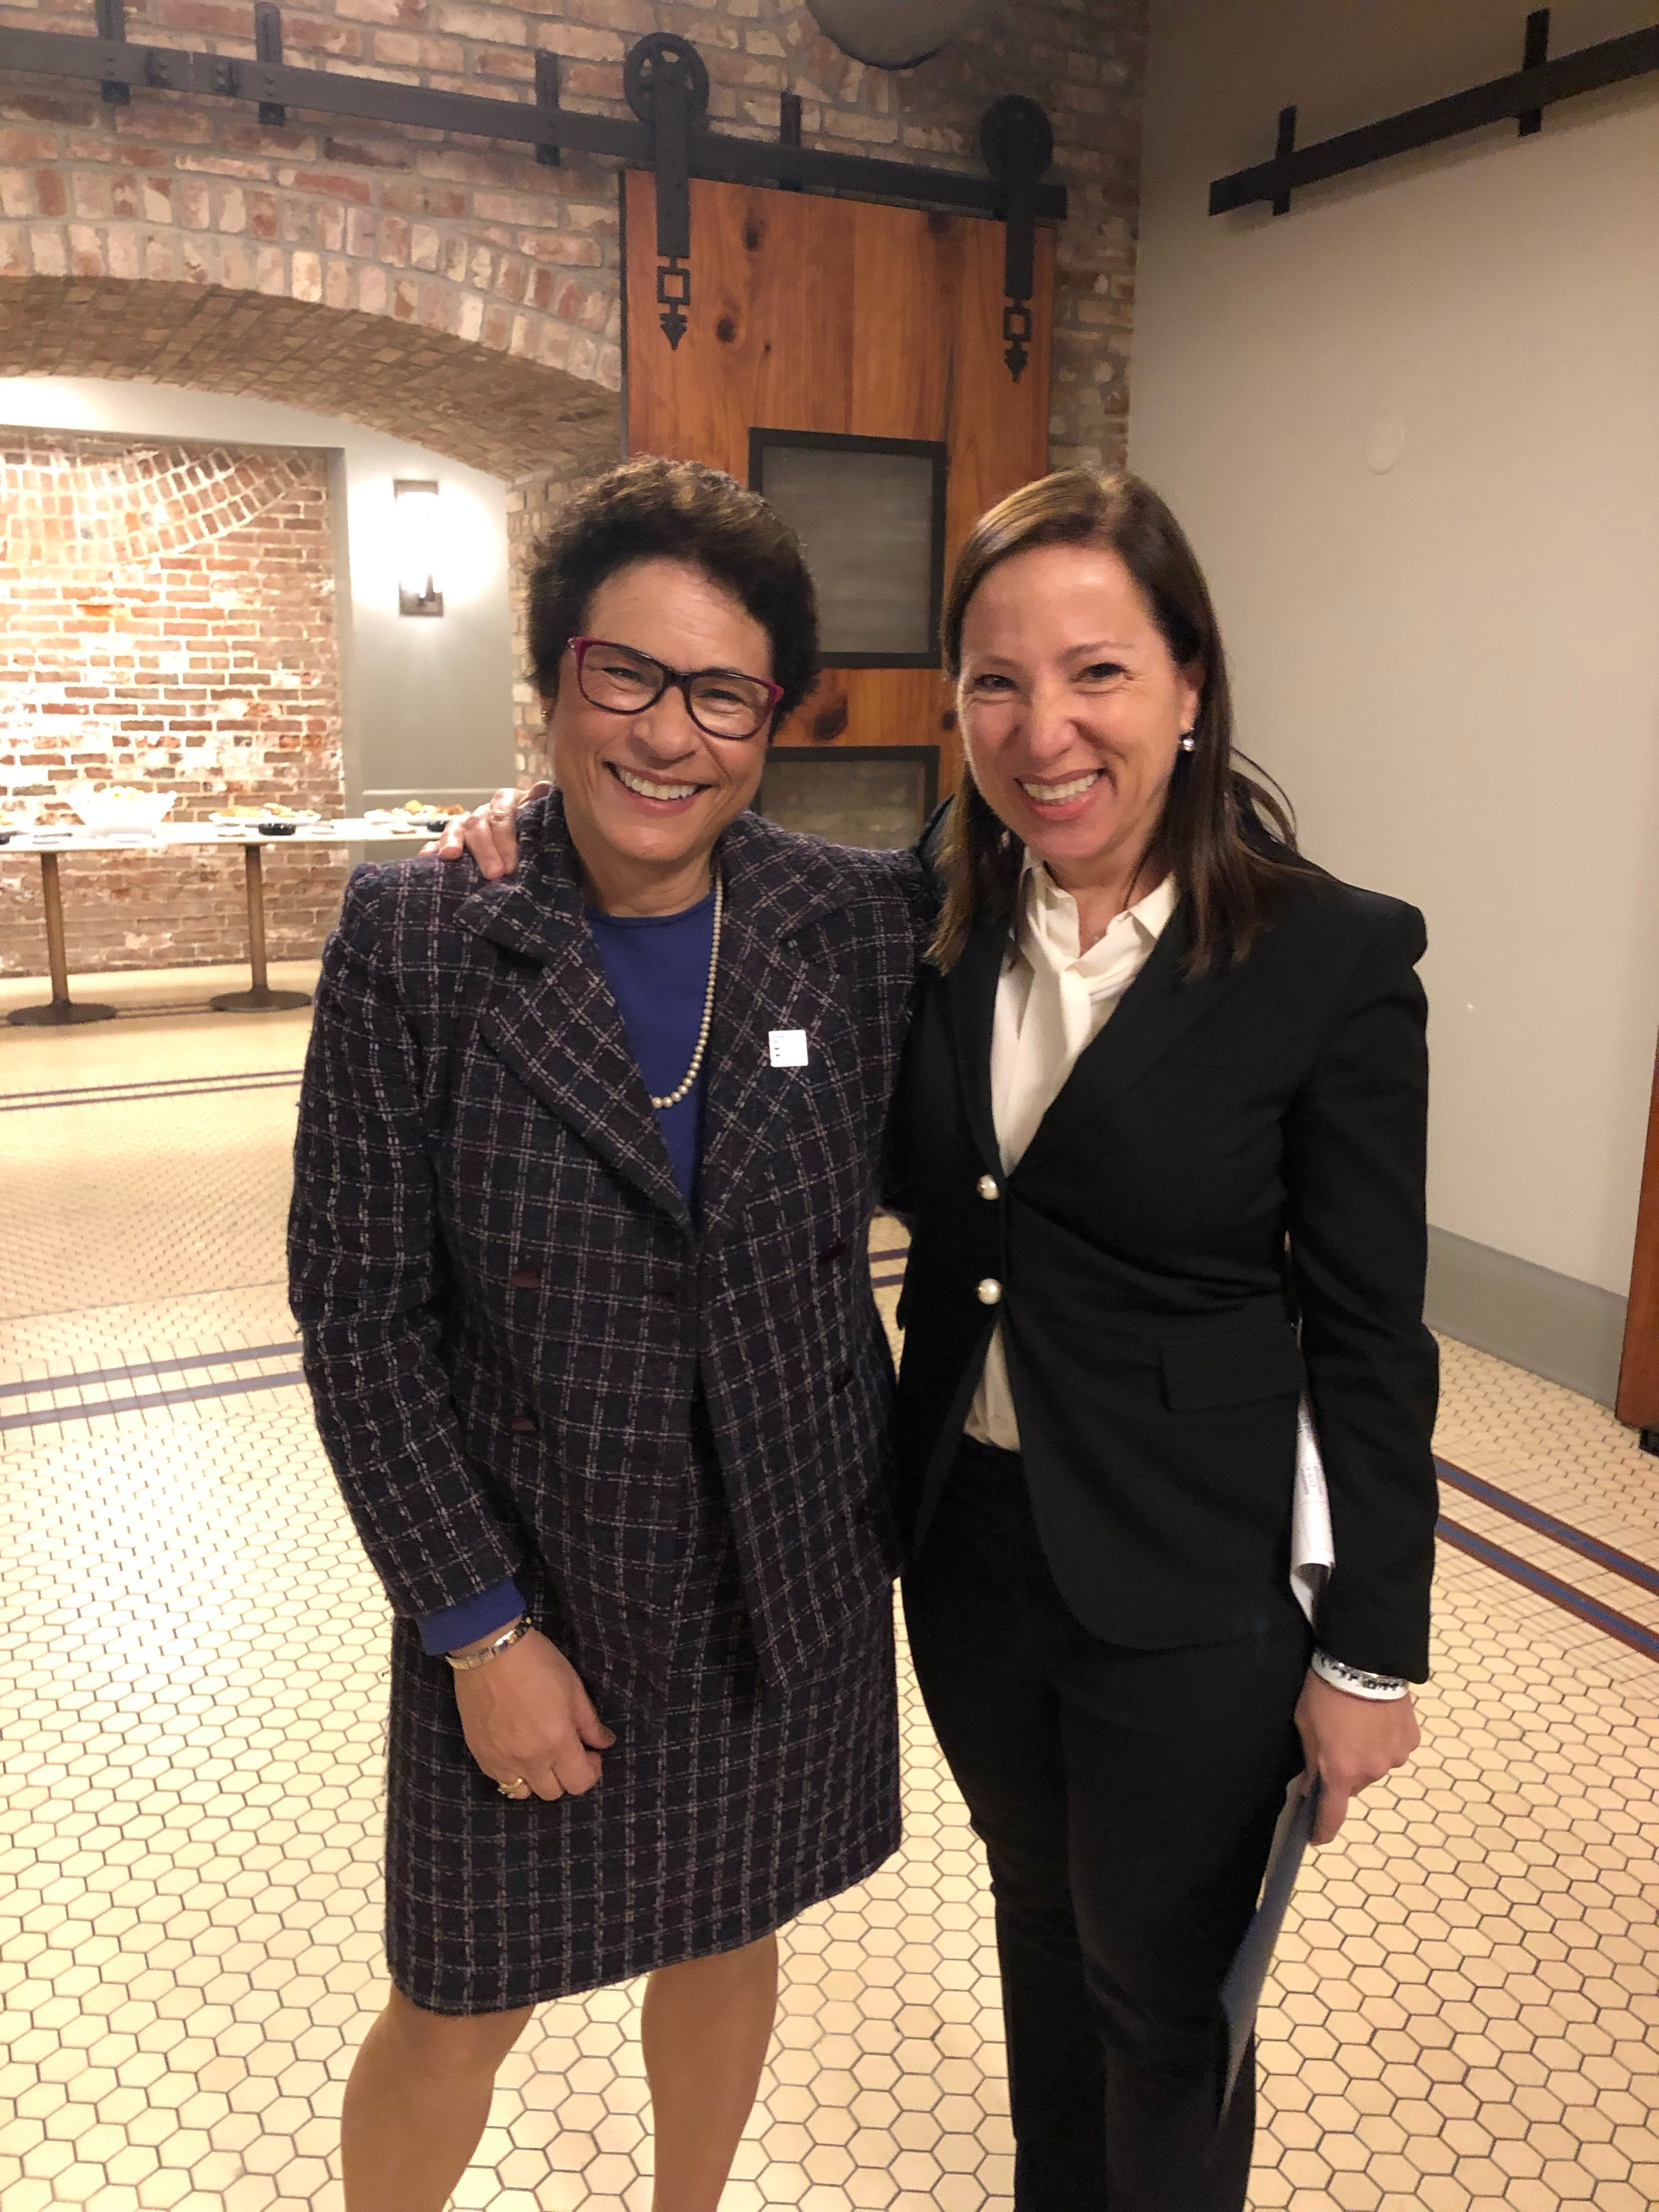 Image of Lt. Governor Kounalakis and BizFed Government Relations Director Lara Larramendi